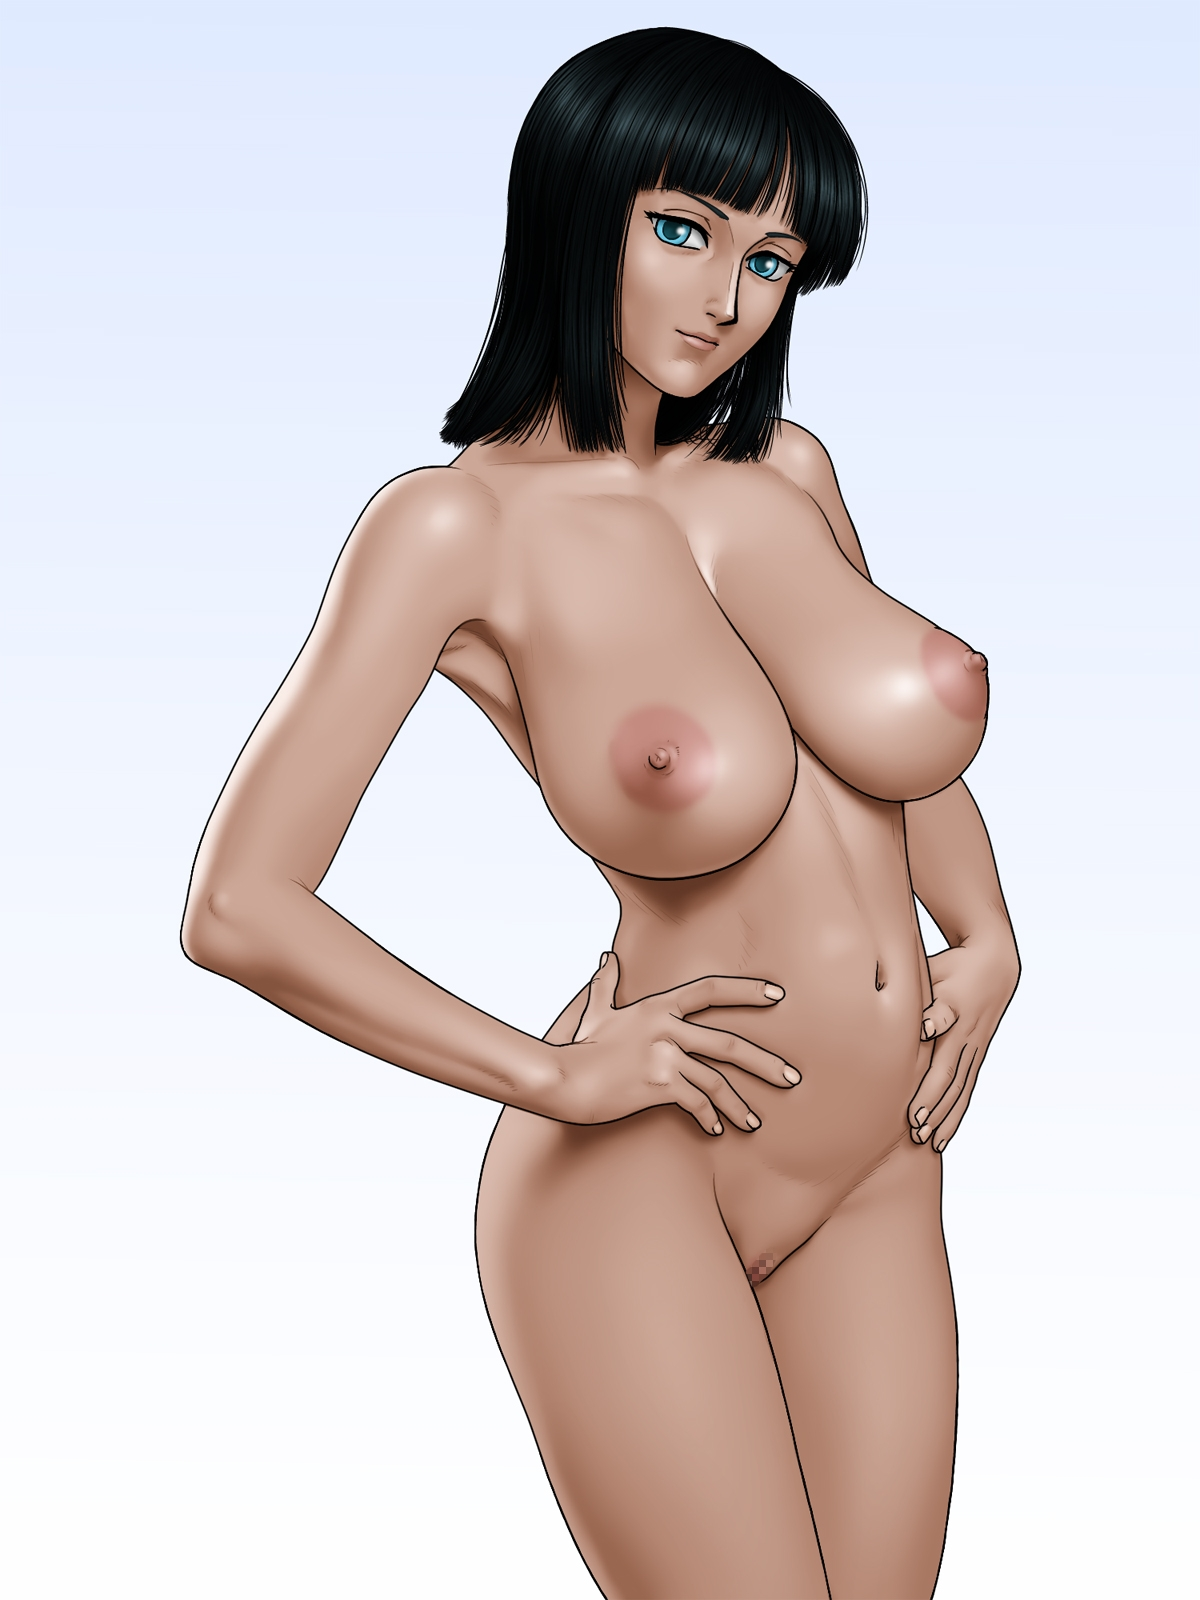 Toon sex pic ##0001301259451 areolae black hair blue eyess breasts censored hands on hips highres hips karma laboratory large breasts legs looking at viewer navel nico robin nipples nude one piece pussy short hair simple background solo standing thighs